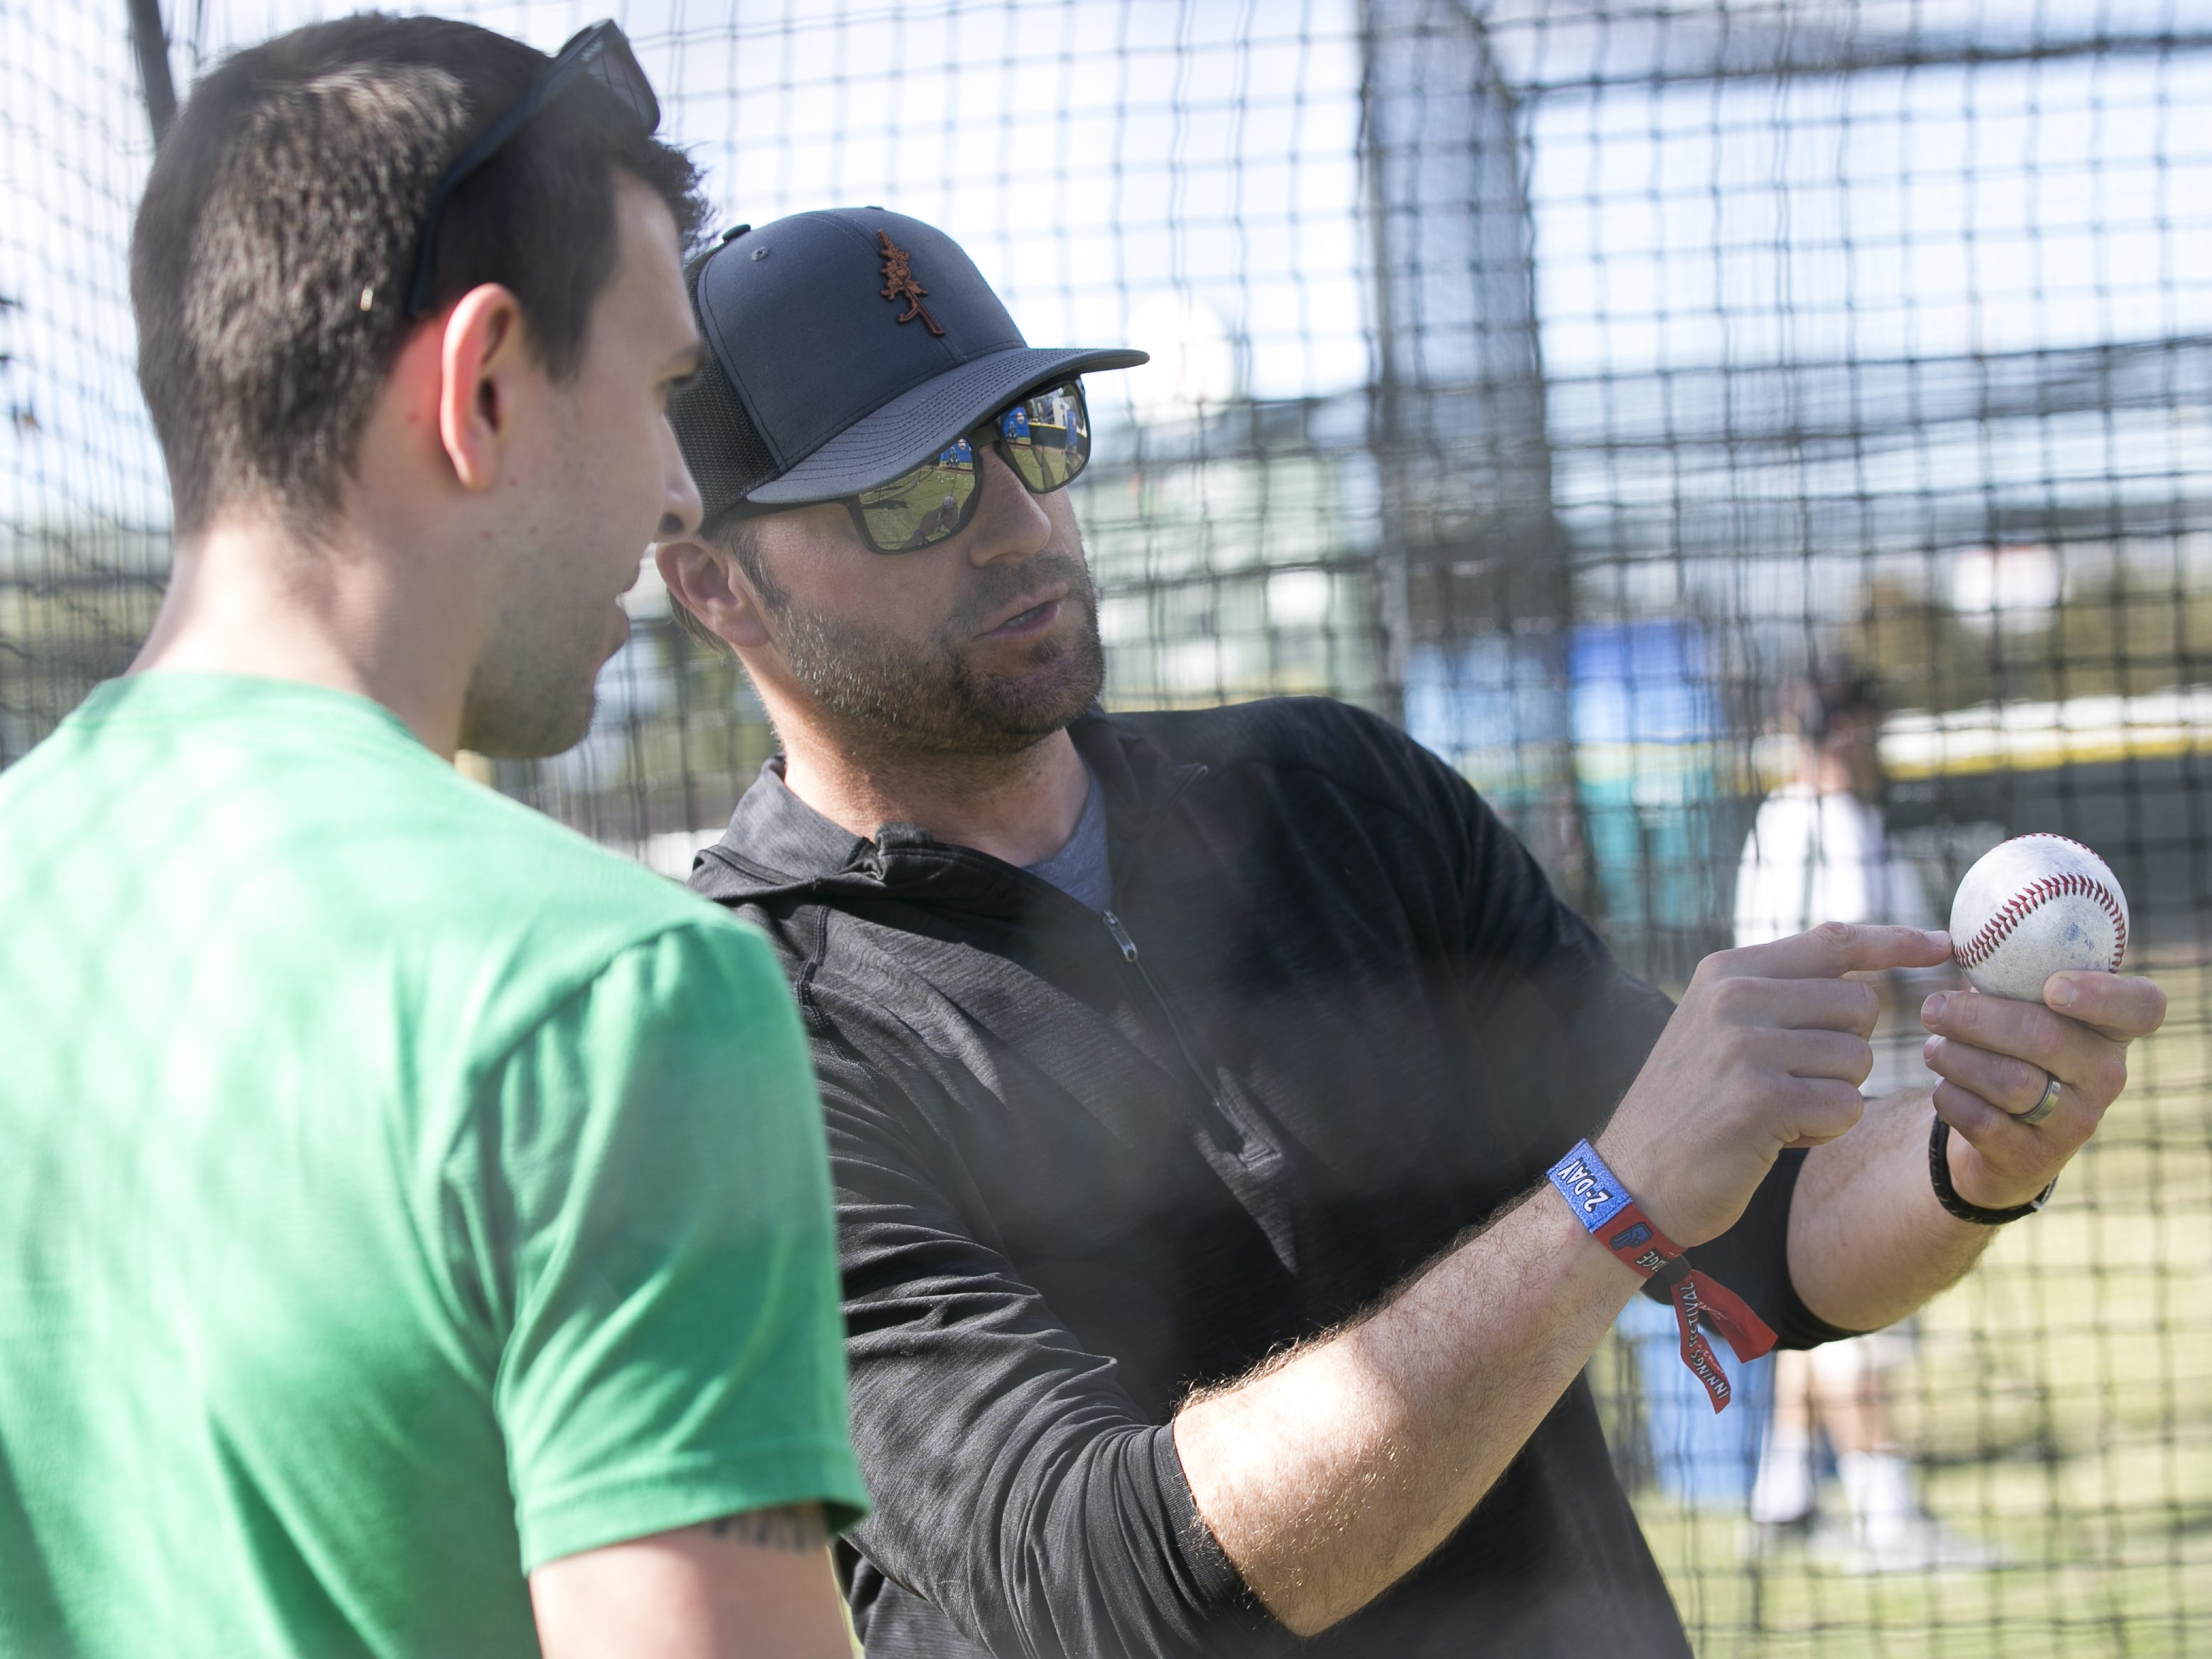 Former MLB pitcher Shawn Estes (right) shows Nick Luongo (left) pitching techniques at the Innings Festival at Tempe Beach Park on Saturday, March 2, 2019.